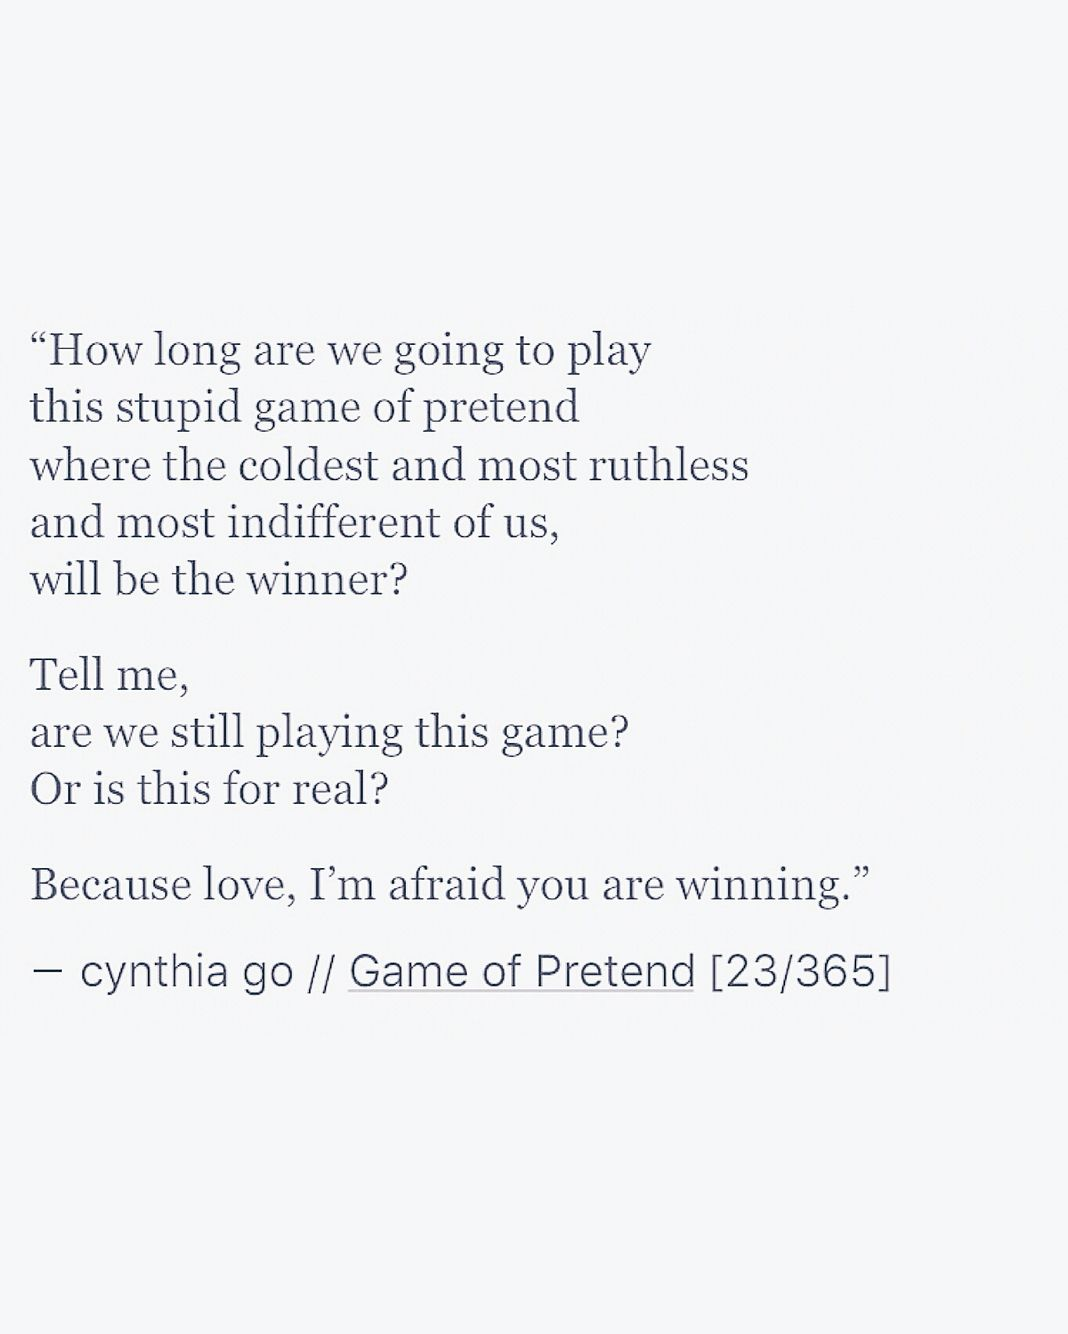 Love Game of Pretend cynthia go writing poetry prose love love quotes